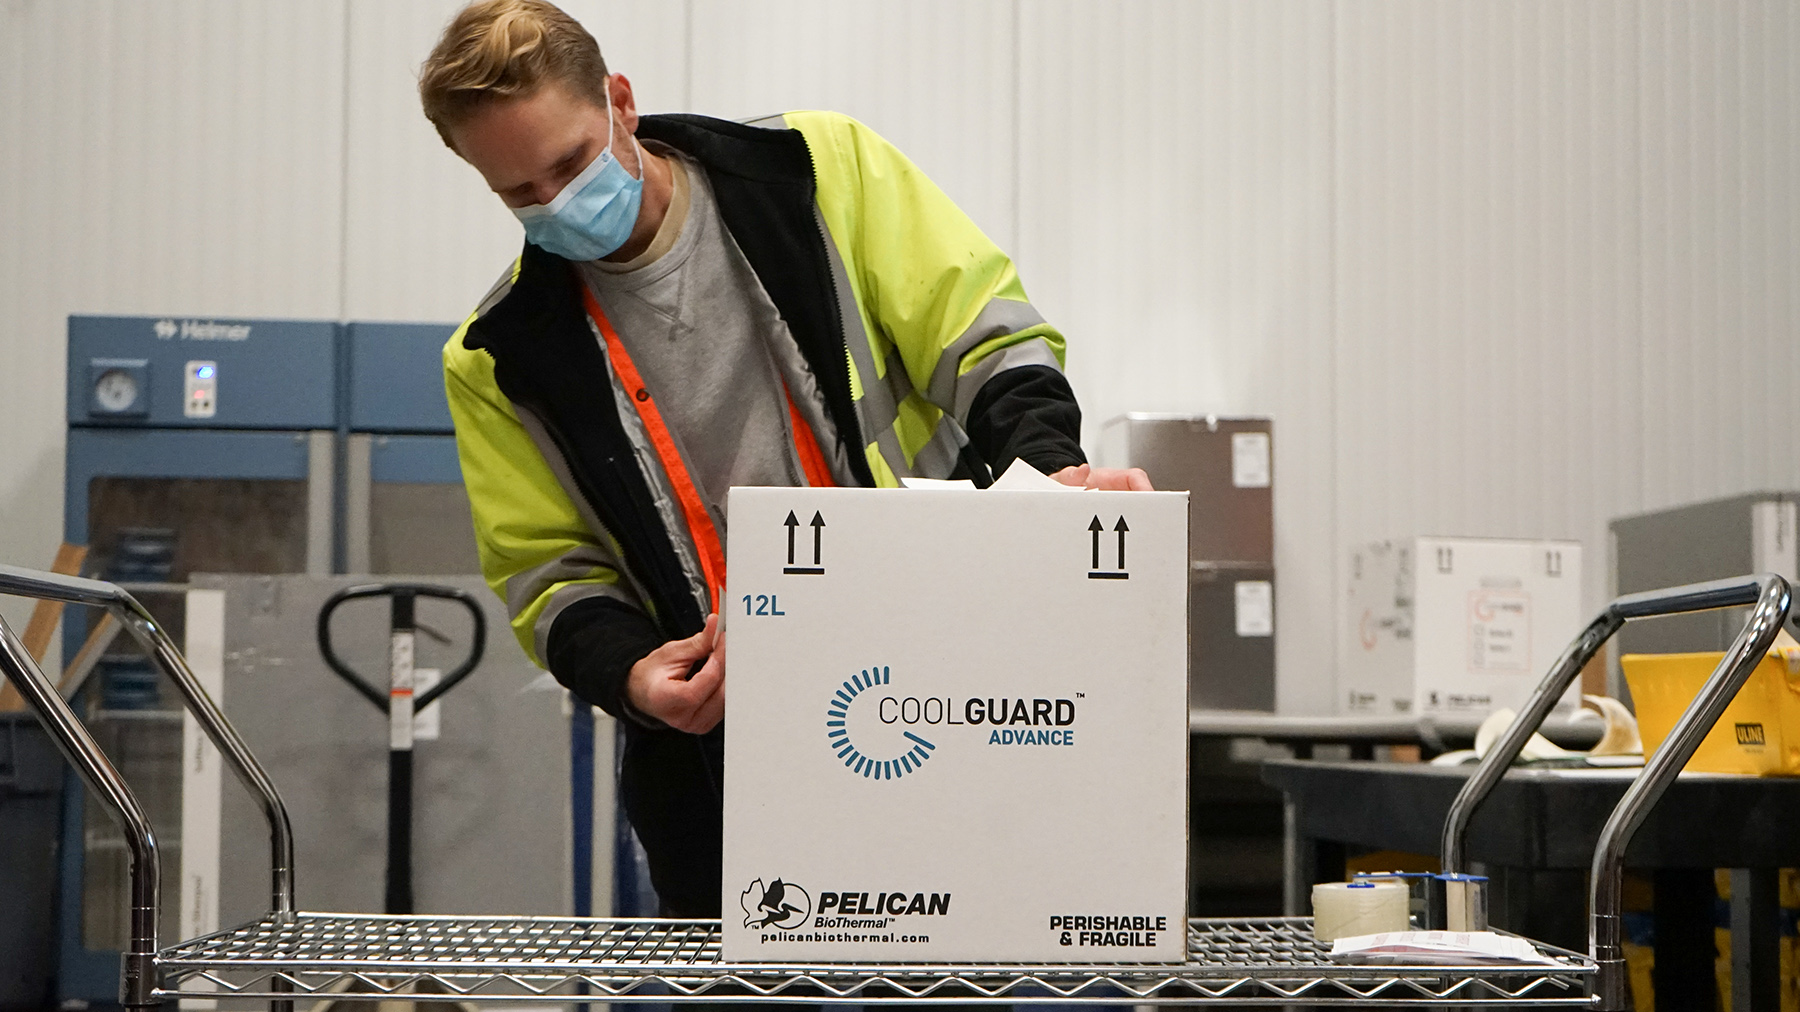 Temperature-sensitive medications bound for India are packed into cold shippers in one of Direct Relief's cold rooms at the organization's distribution facility in Santa Barbara, California.. (Lara Cooper/Direct Relief)